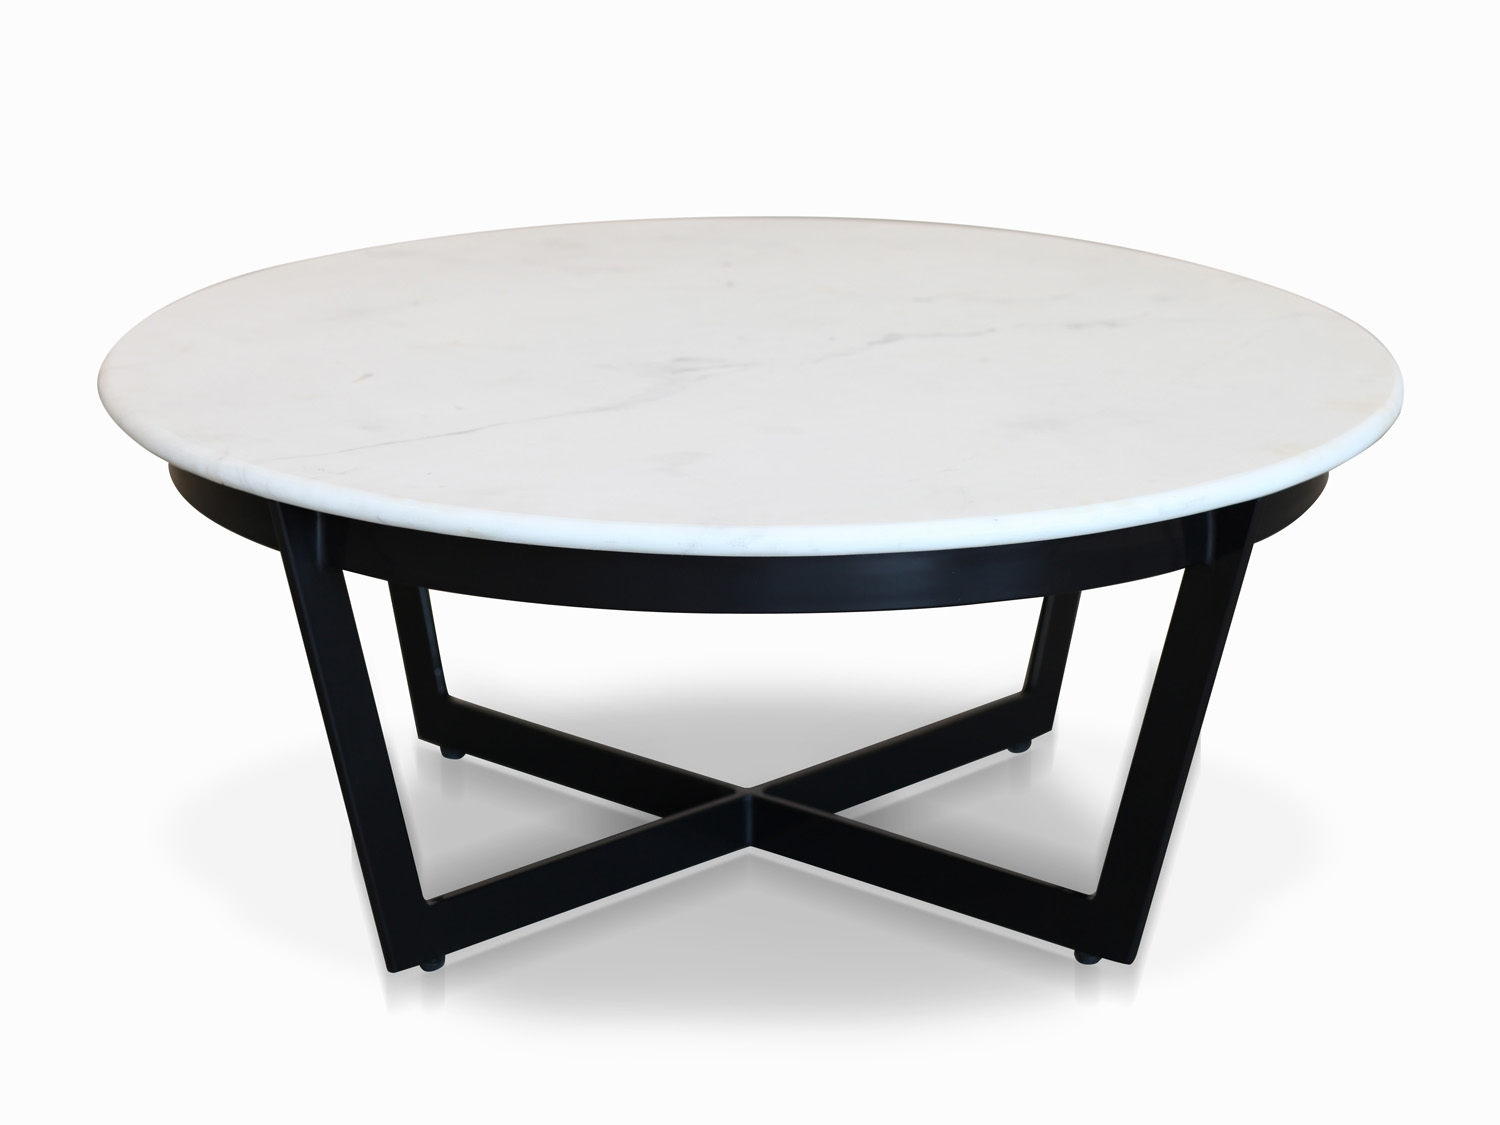 Beautiful Marble Round Coffee Table With Coffee Tables Design In Smart Round Marble Brass Coffee Tables (View 1 of 30)